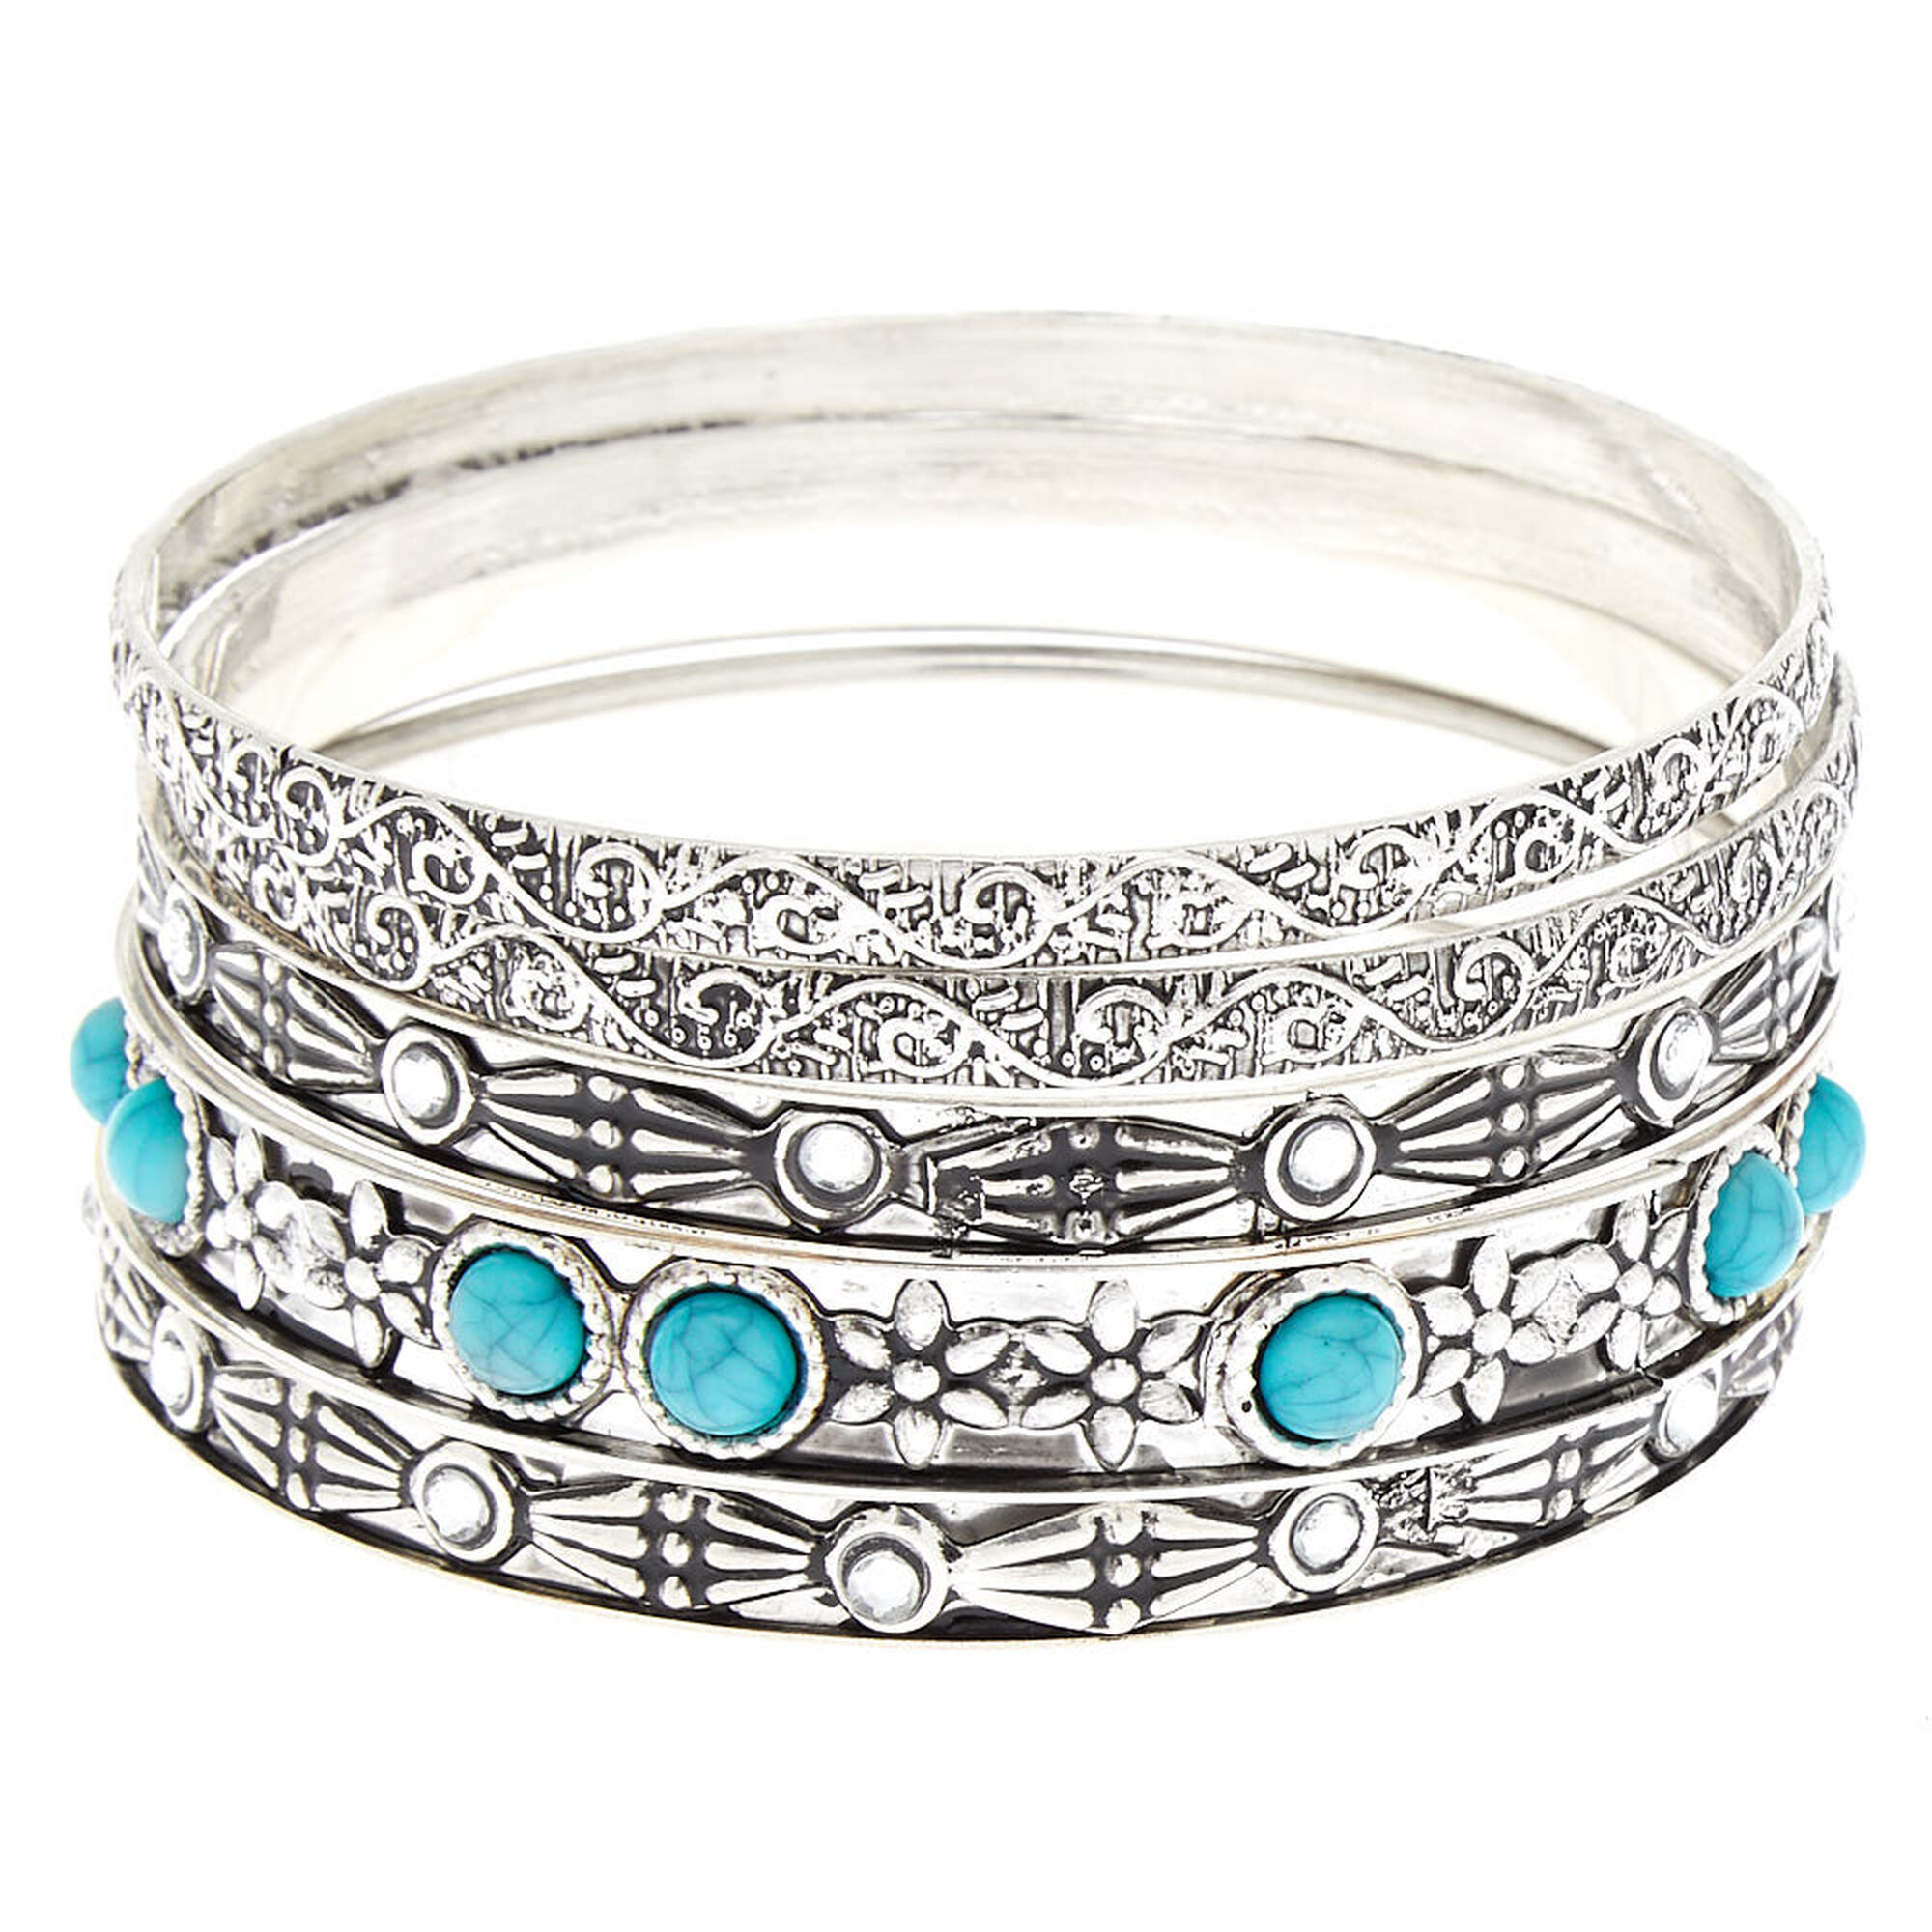 27f9ebe1eb Silver Vintage Bangle Bracelets - Turquoise, 5 Pack | Claire's